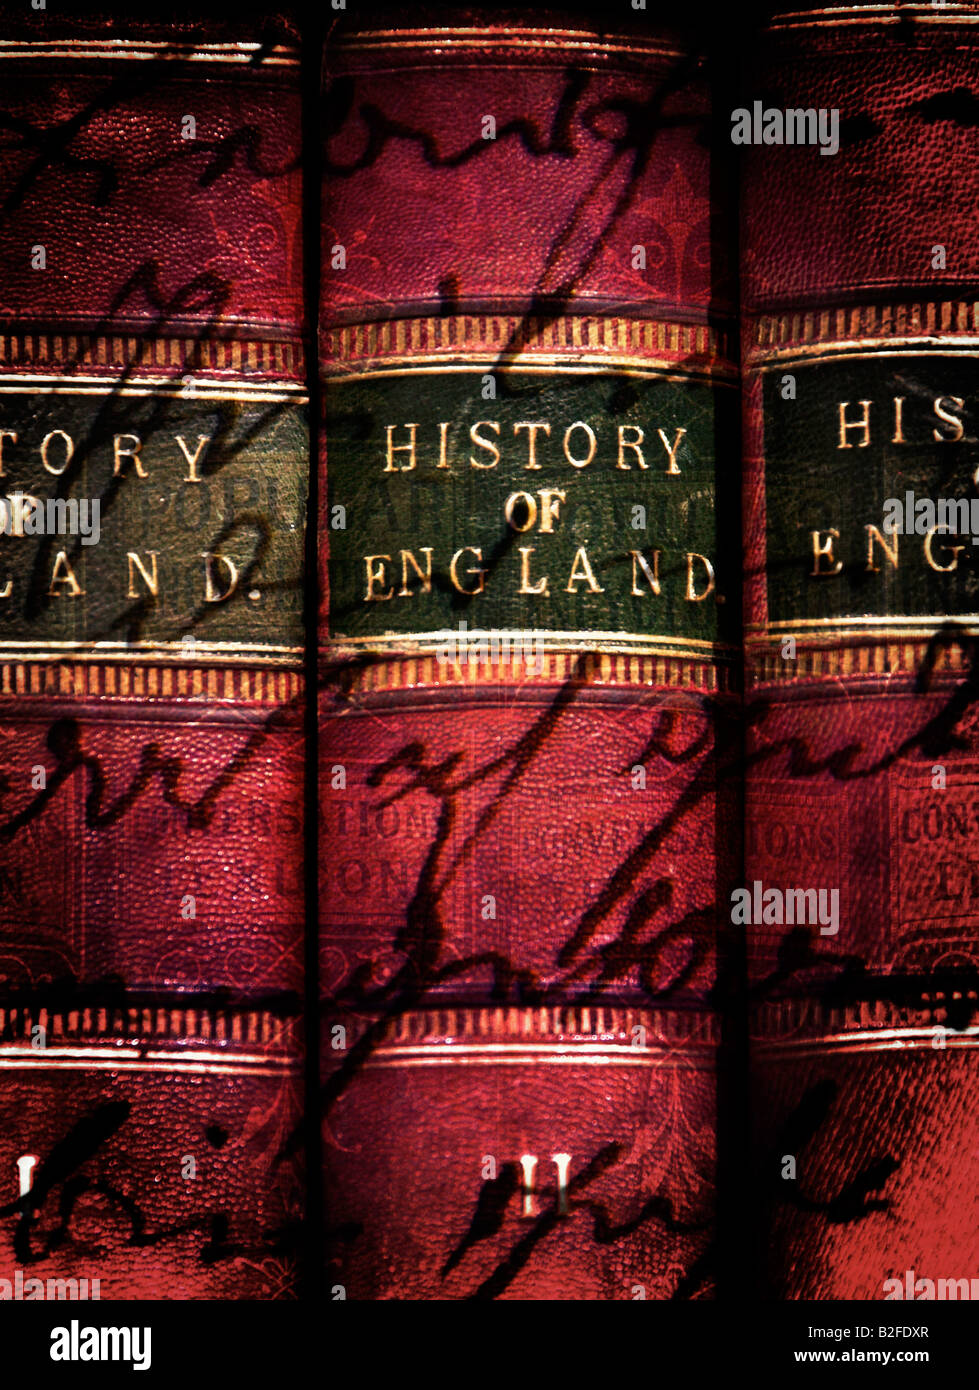 Old Vintage Books History of England 3 Volumes - Stock Image